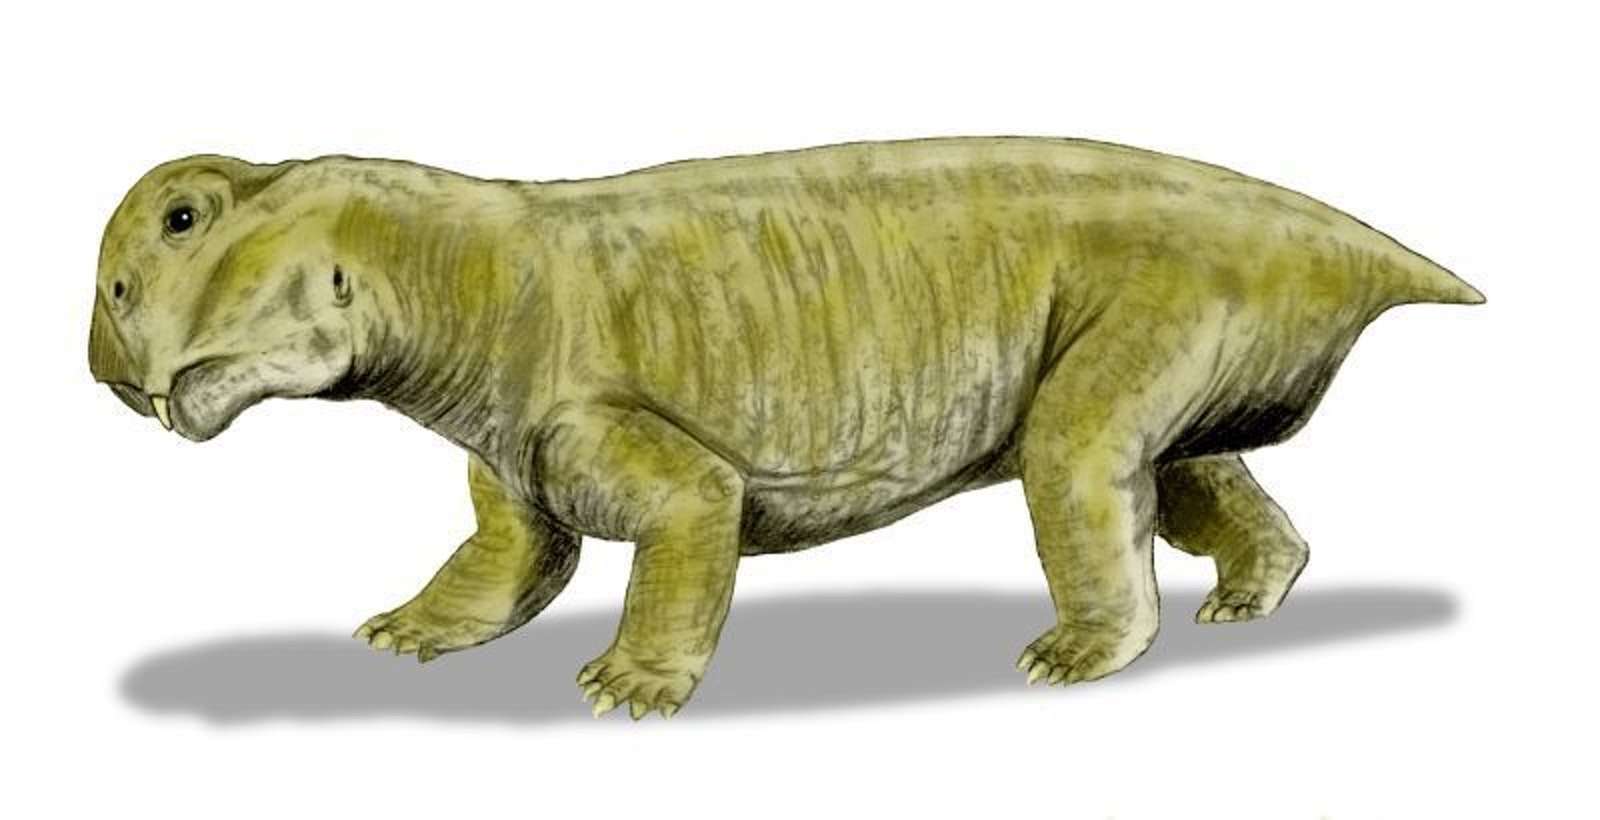 'Lystrosaurus murrayi, 'a dicynodont from the Early Triassic of South Africa, India and Antarctica.